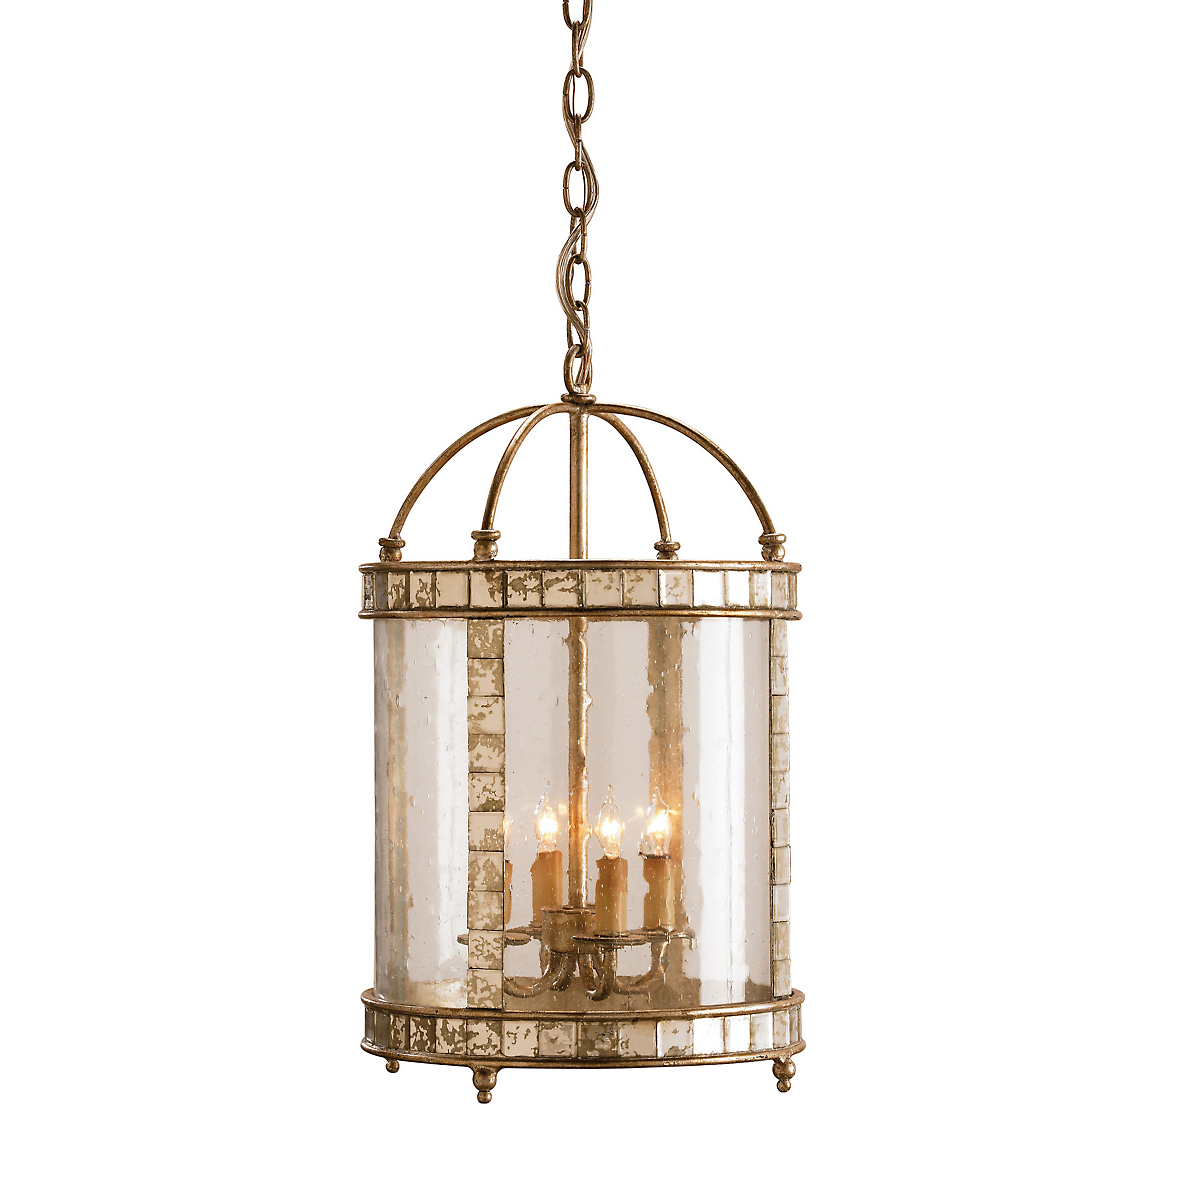 Currey & Company Corsica Small Ceiling Lamp